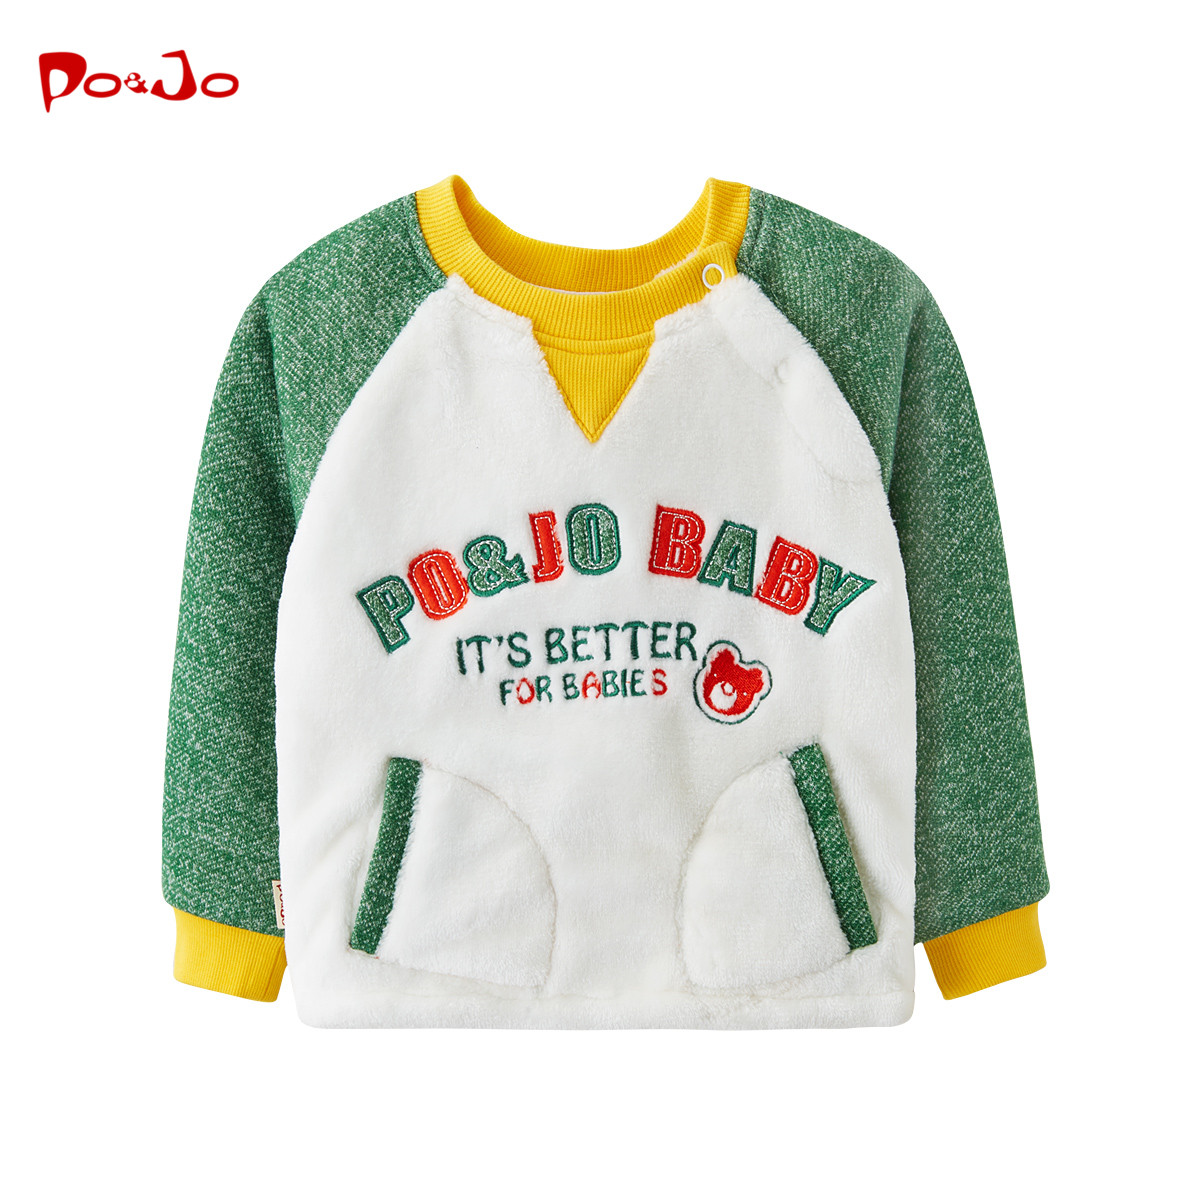 Joe ruo leather 2016 fall and winter clothes new baby boy child pullover sweater fall and winter clothes plus velvet warm clothes